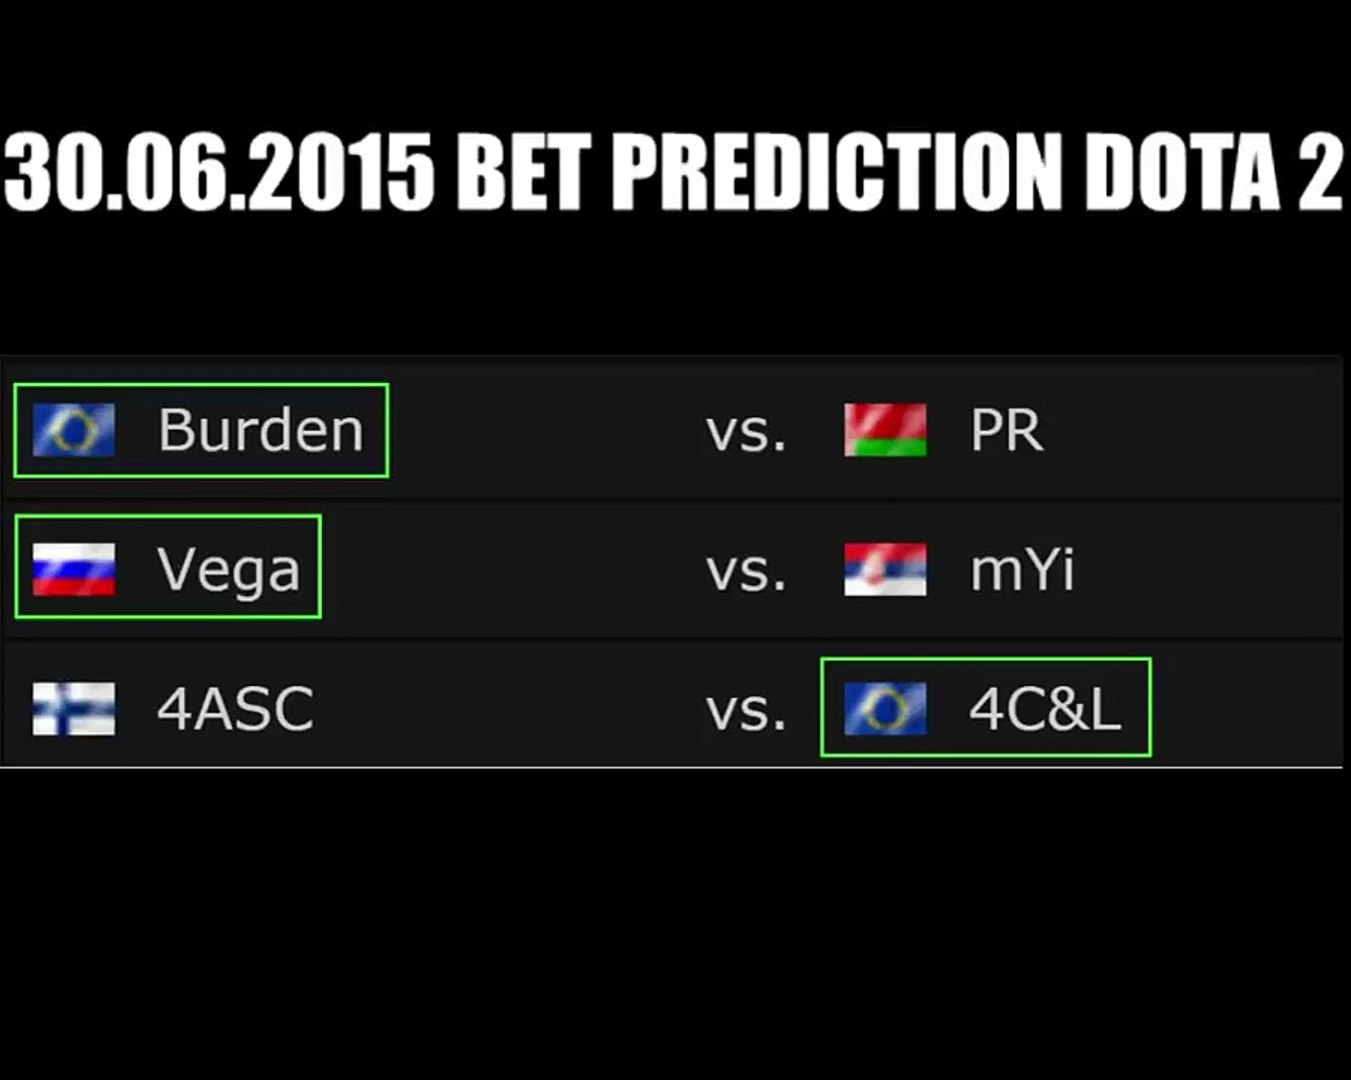 Dota 2 lounge betting predictions football vinyl investments